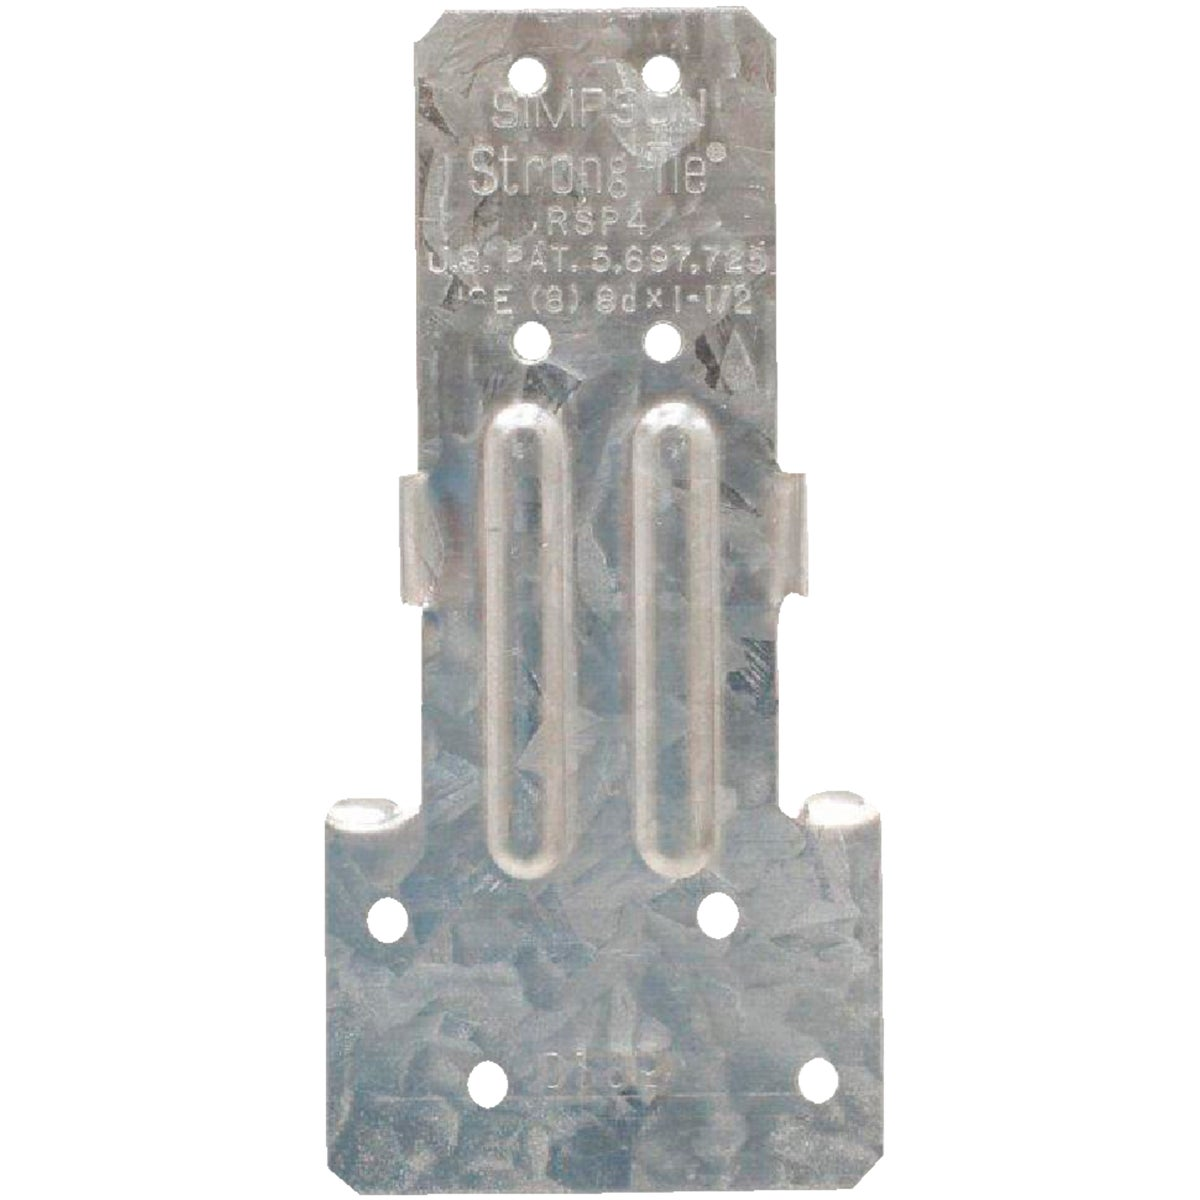 REV STUD PLATE TIE - RSP4 by Simpson Strong Tie